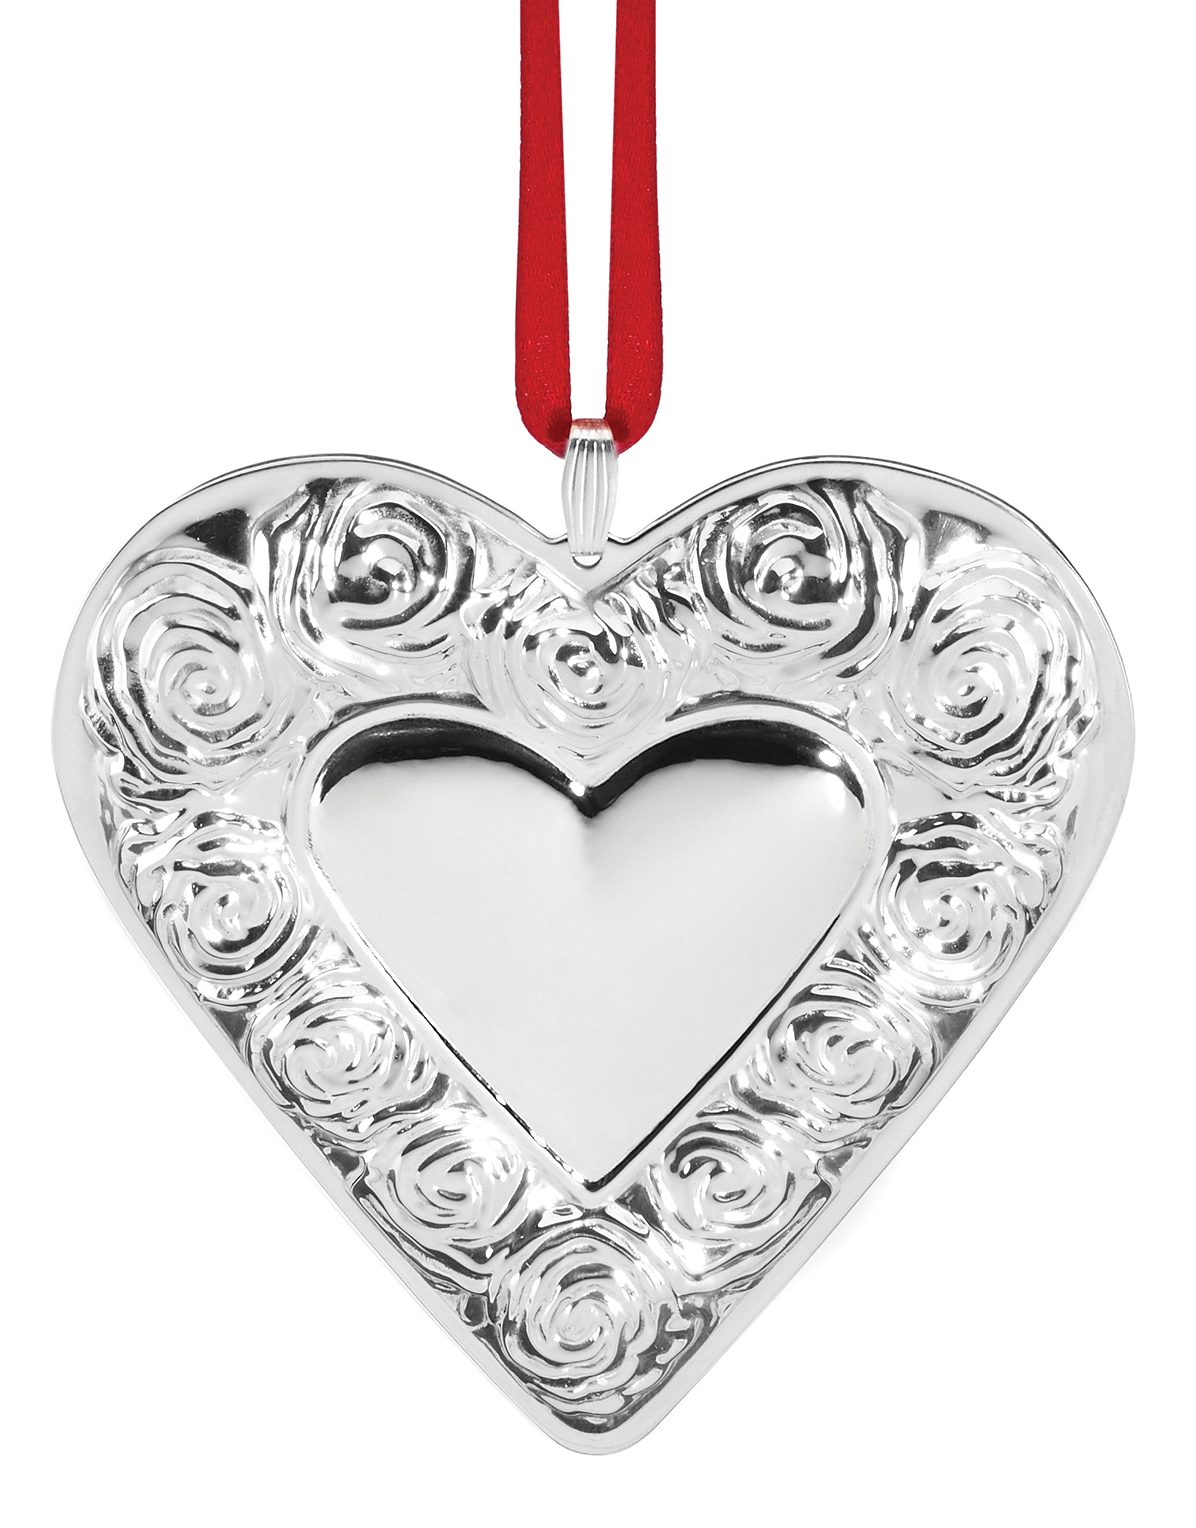 #93749 - Ornaments by Reed & Barton 2020 HEART 3rd Edition